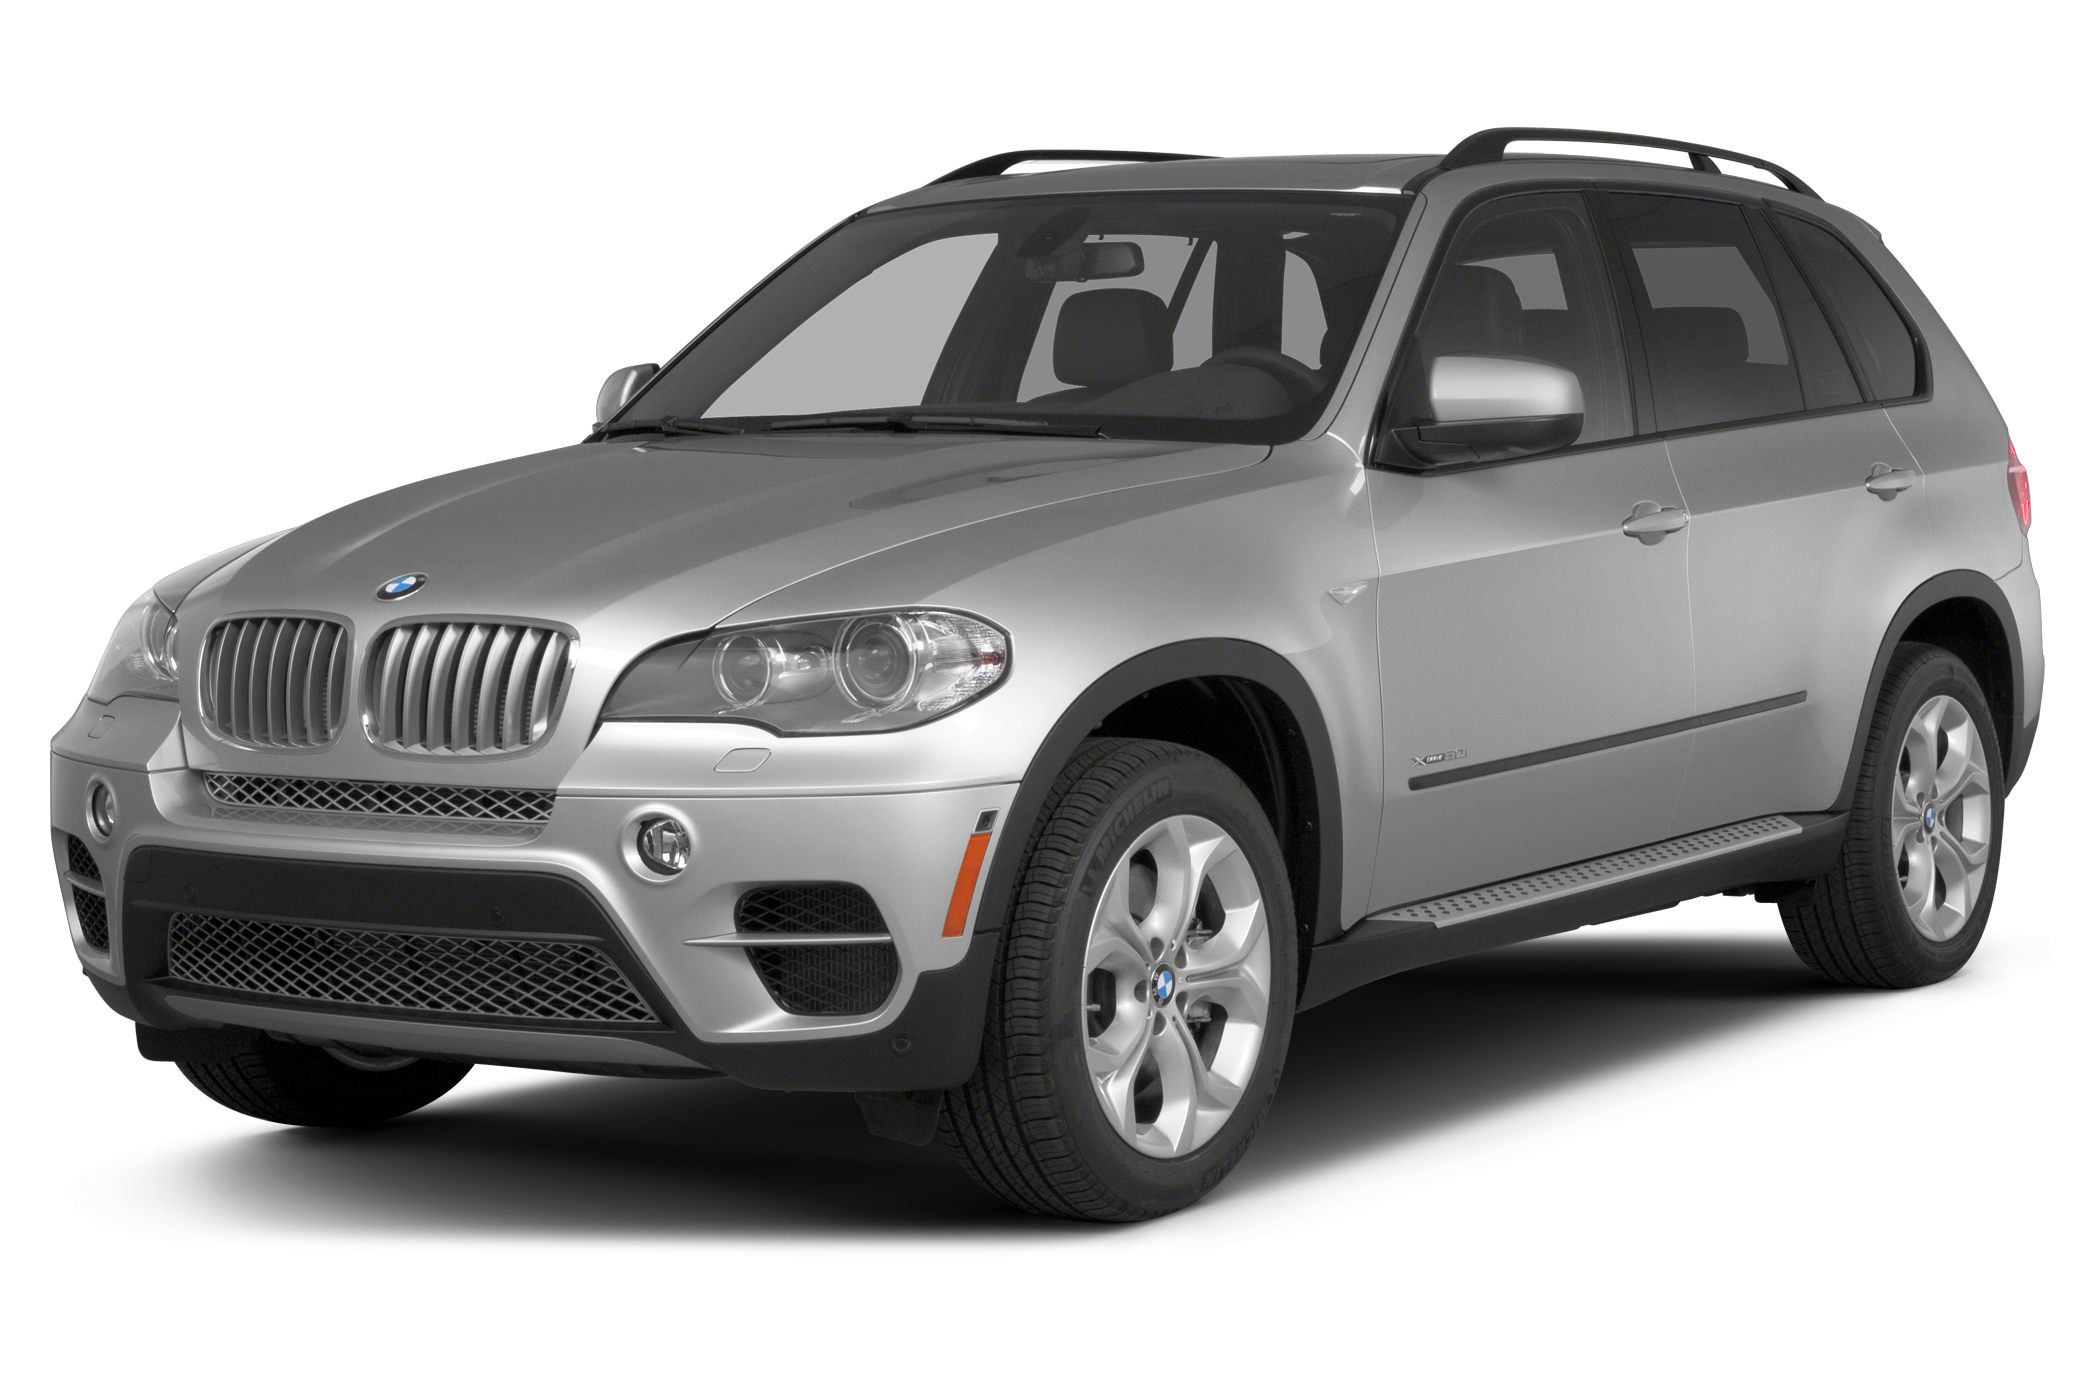 2013 BMW X5 XDrive35i Premium SUV for sale in Charlotte for $45,819 with 43,844 miles